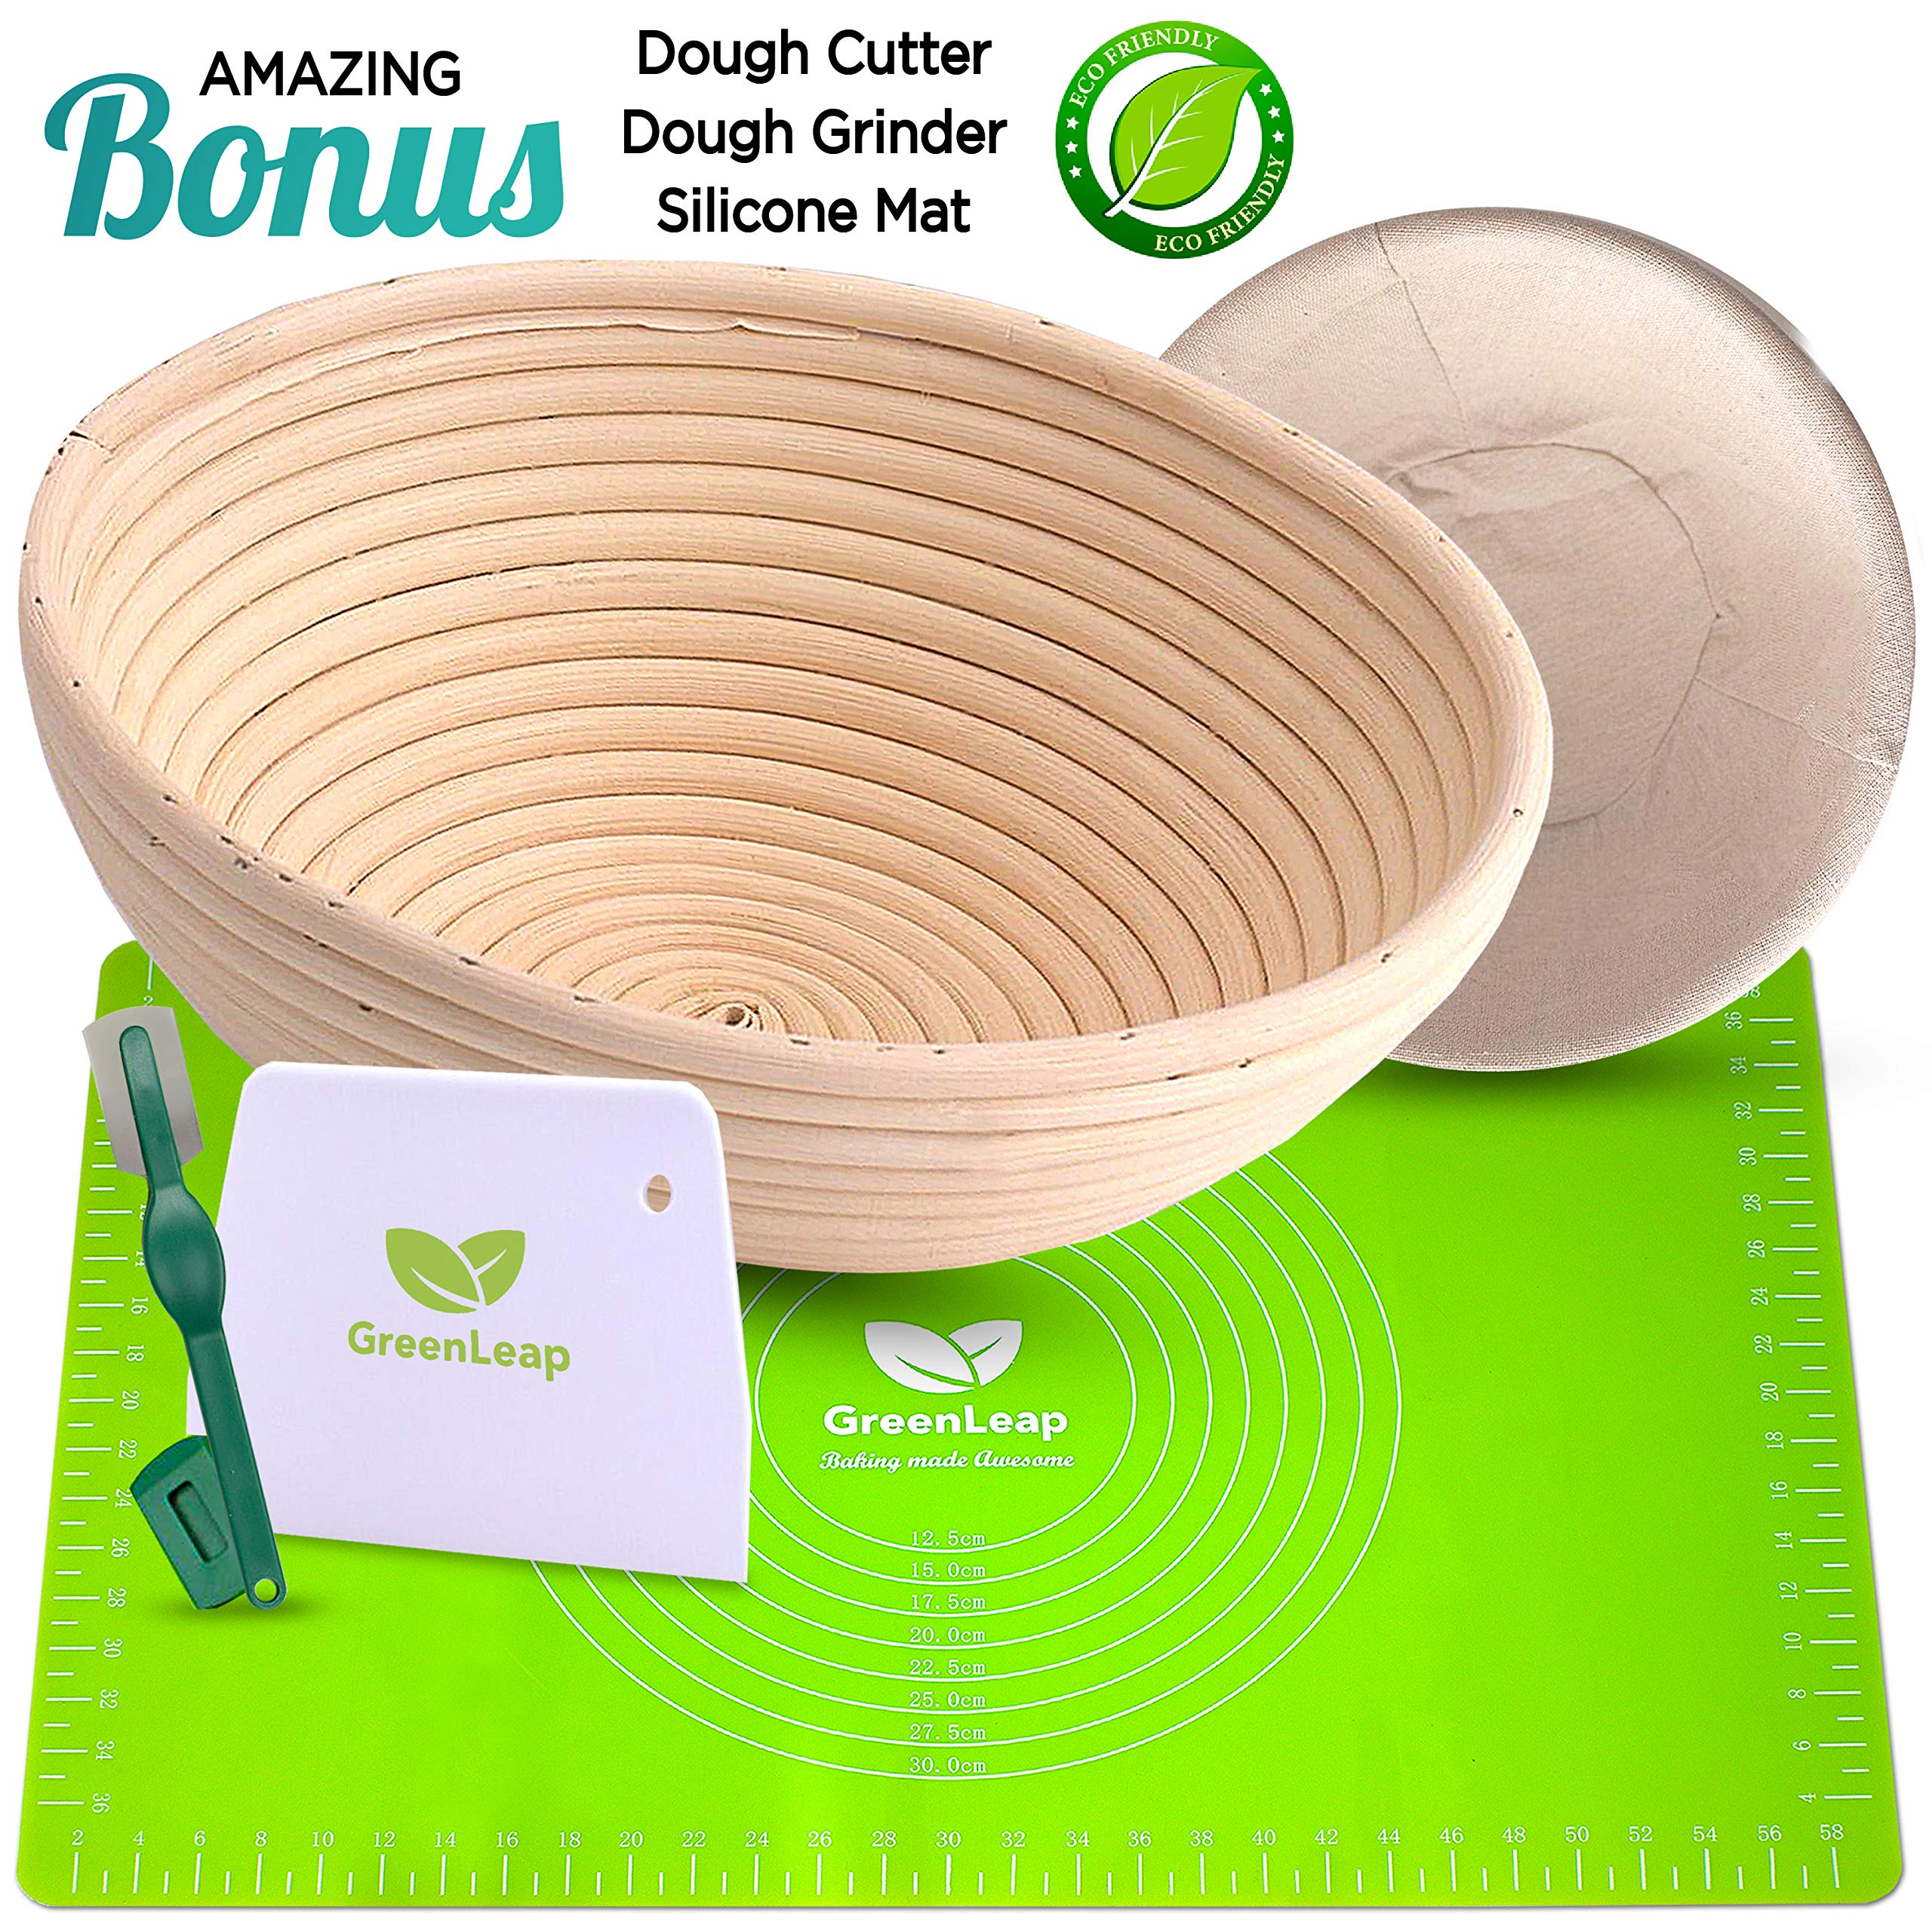 9 Inch Round Bread Proofing Basket - Rattan Banneton - For Professional and Home Use. Create Traditional Bread with this Artisan Baking Tool - 3 Accessories Plus Bonus Premium Silicone Baking Mat. by GreenLeap